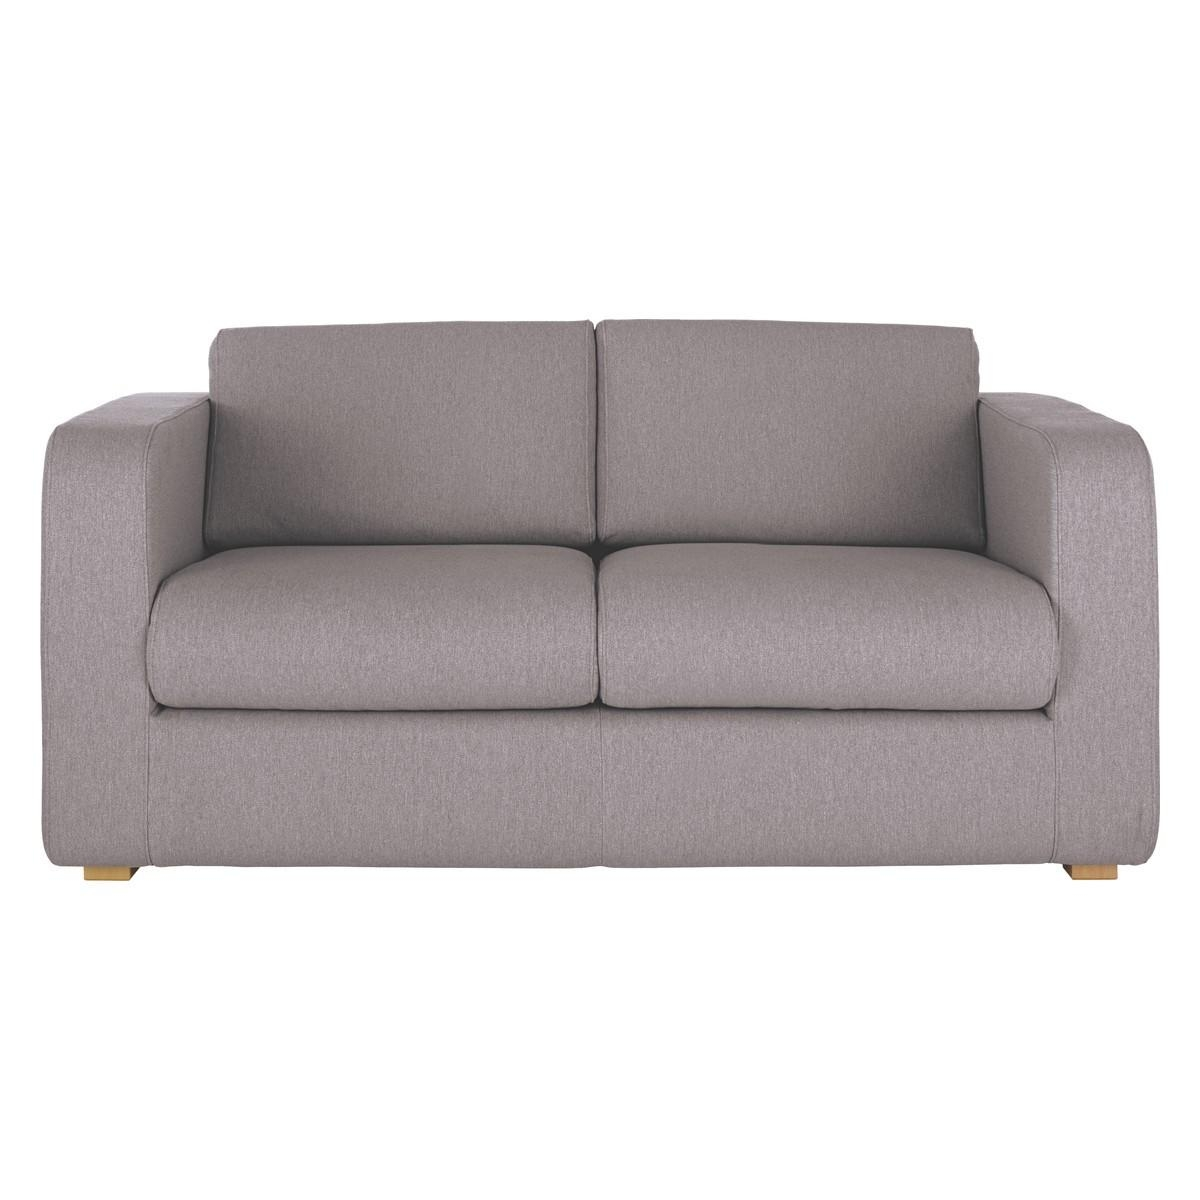 Sofas Center : Jensen Seater Small Sofa Fabric Upholstered Dark With Regard To Small 2 Seater Sofas (Image 13 of 20)